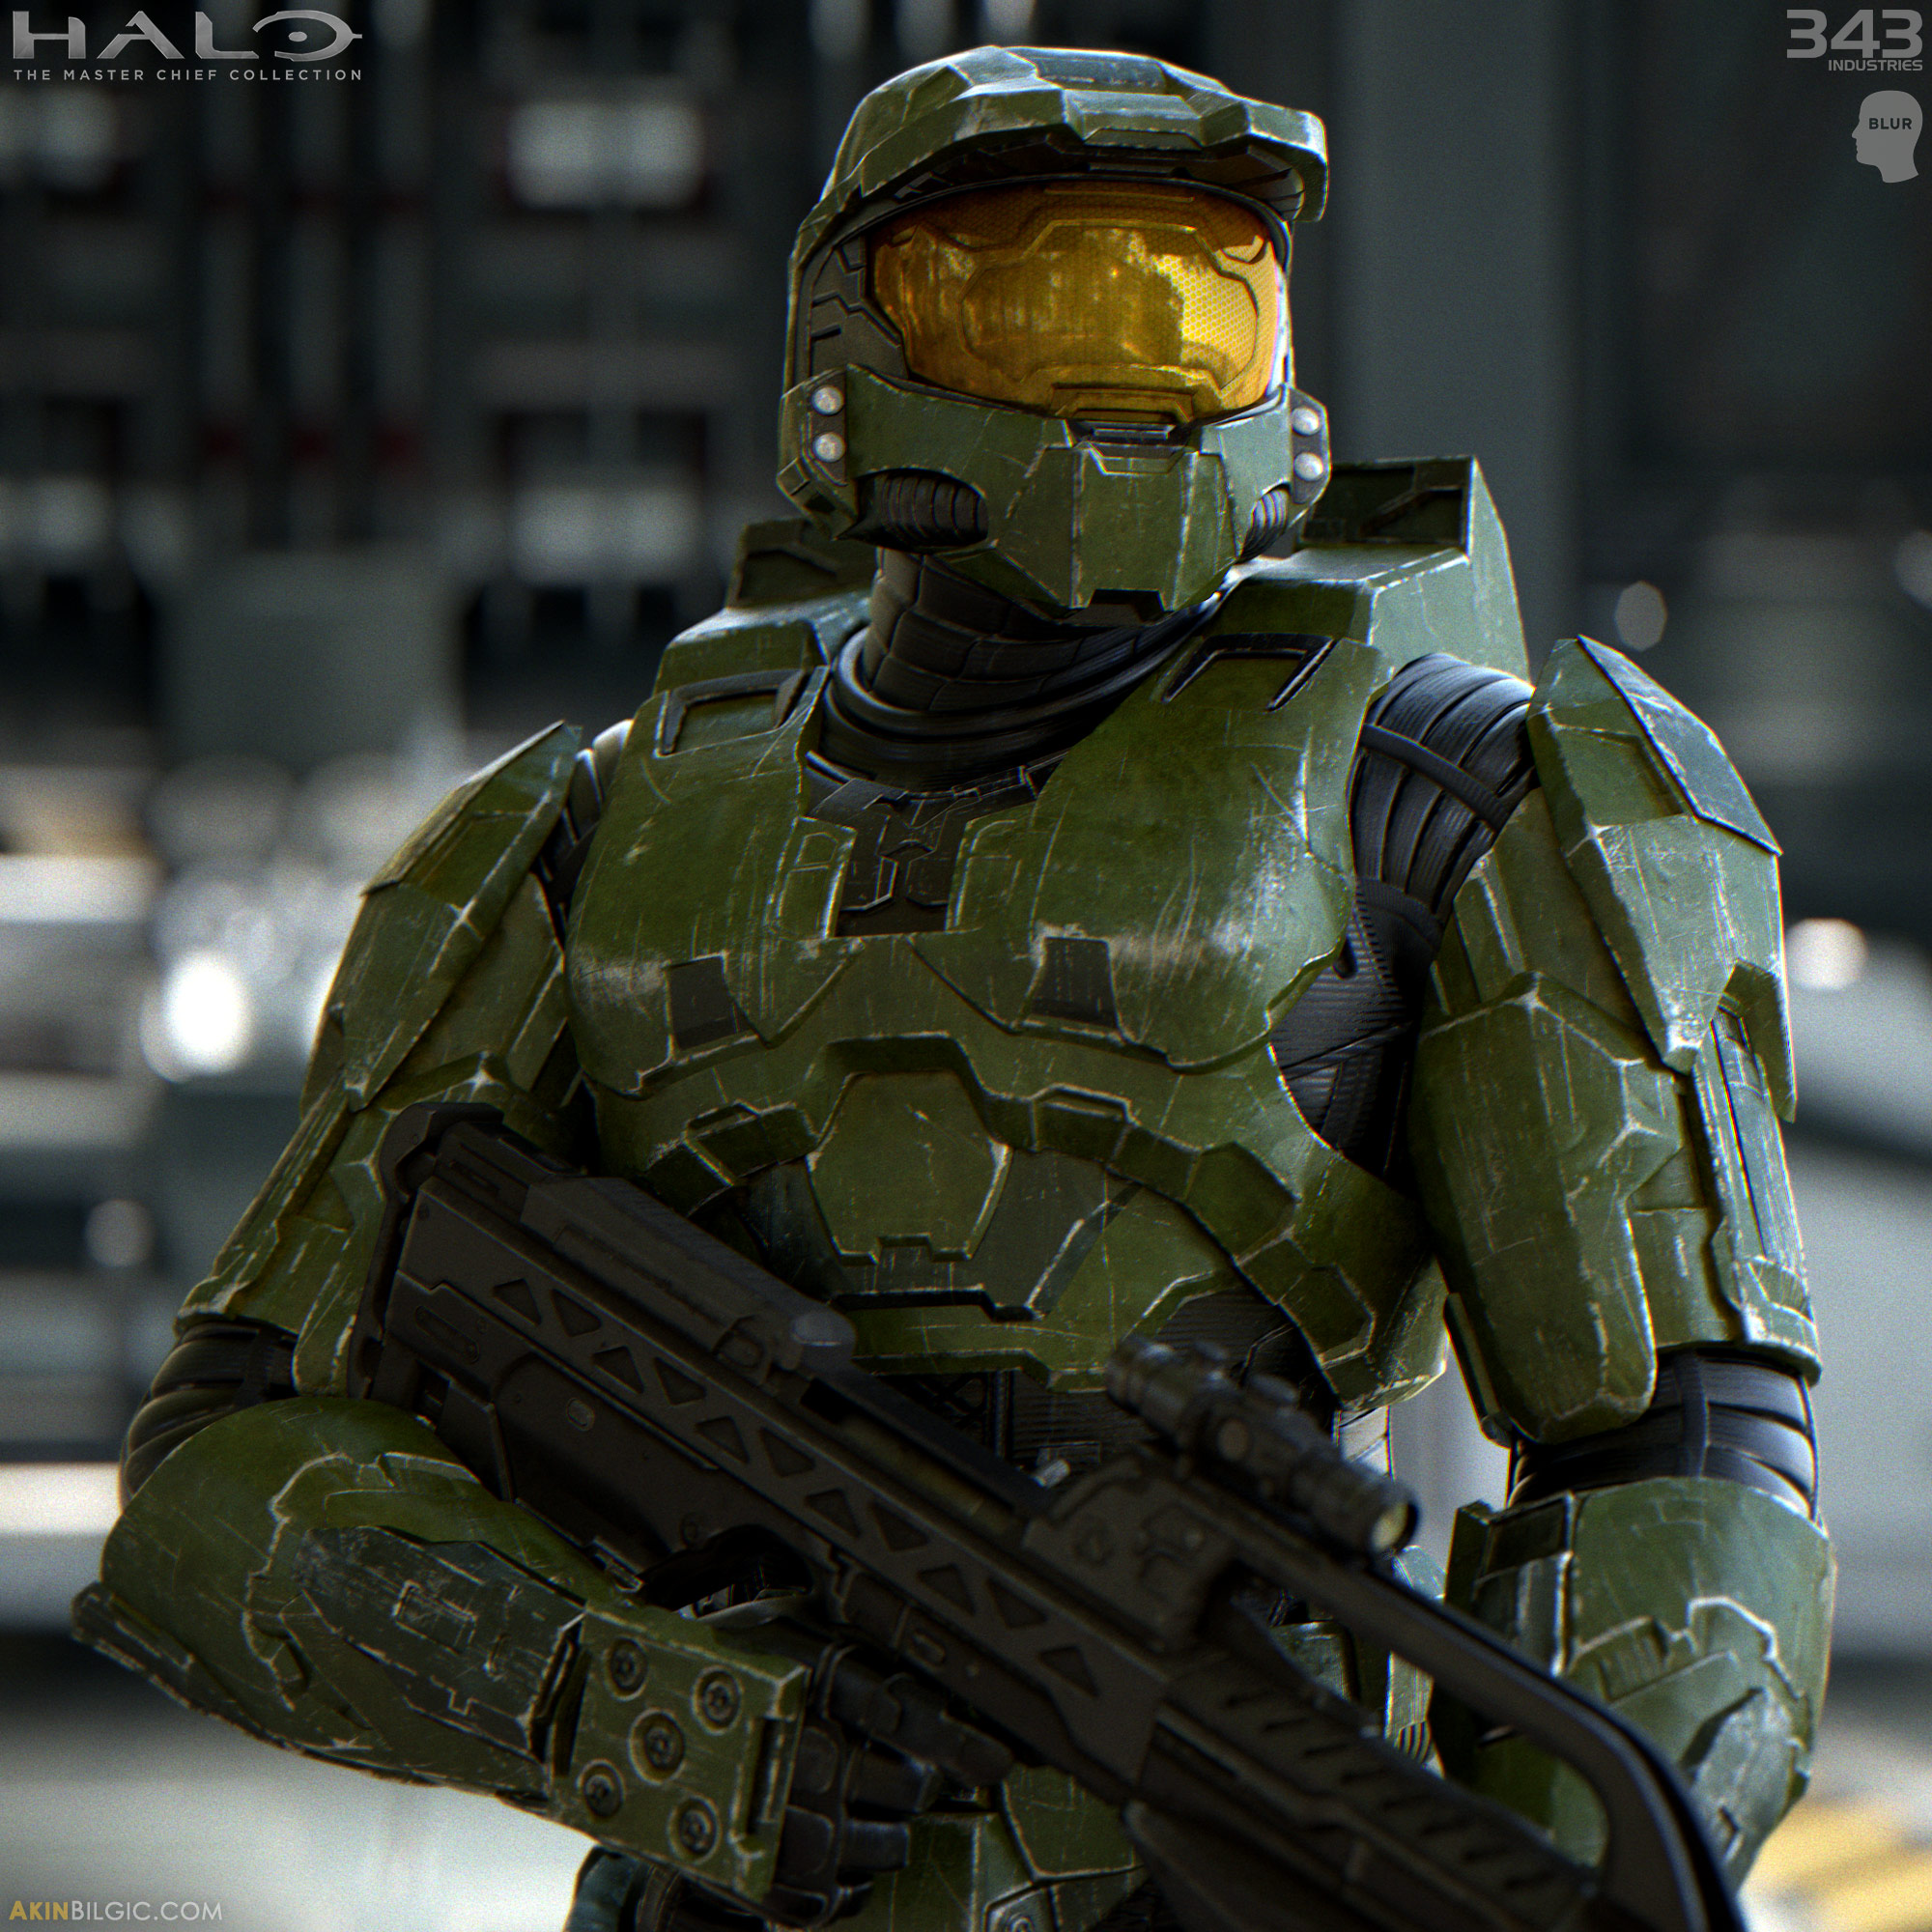 Unresolved Topics Halo Universe Forums Halo - Official Site